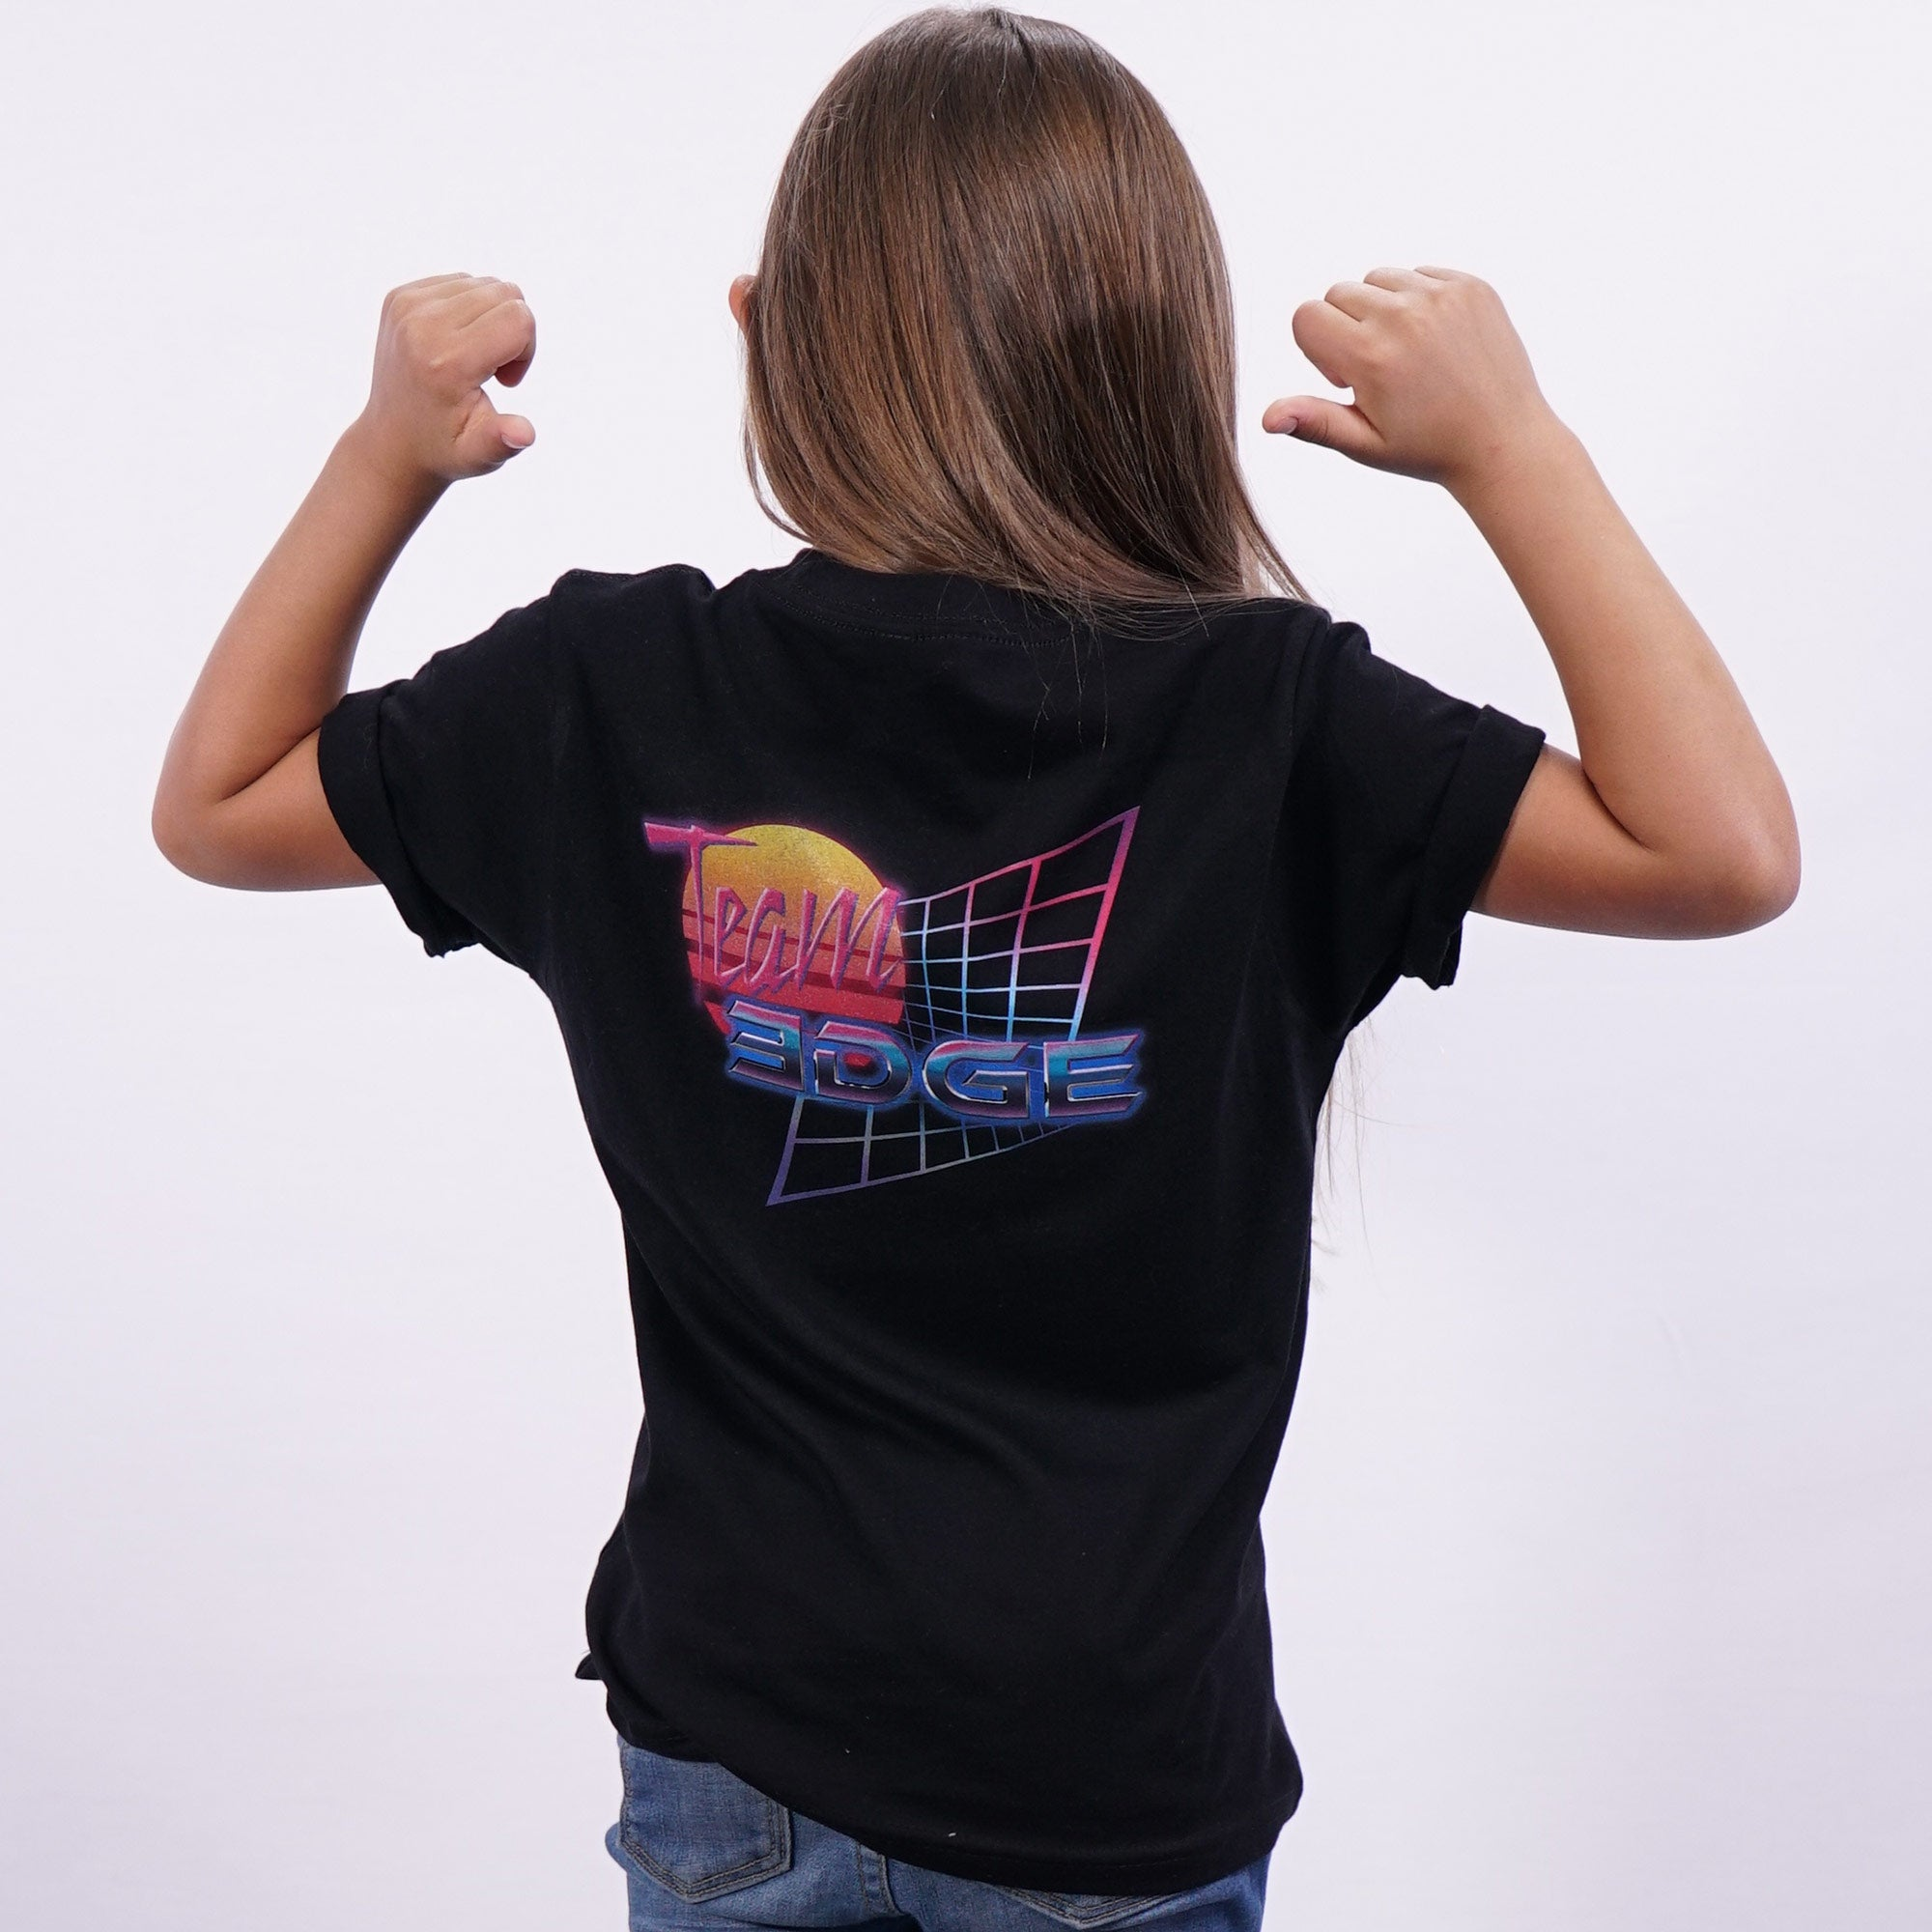 80's Team Youth Tee